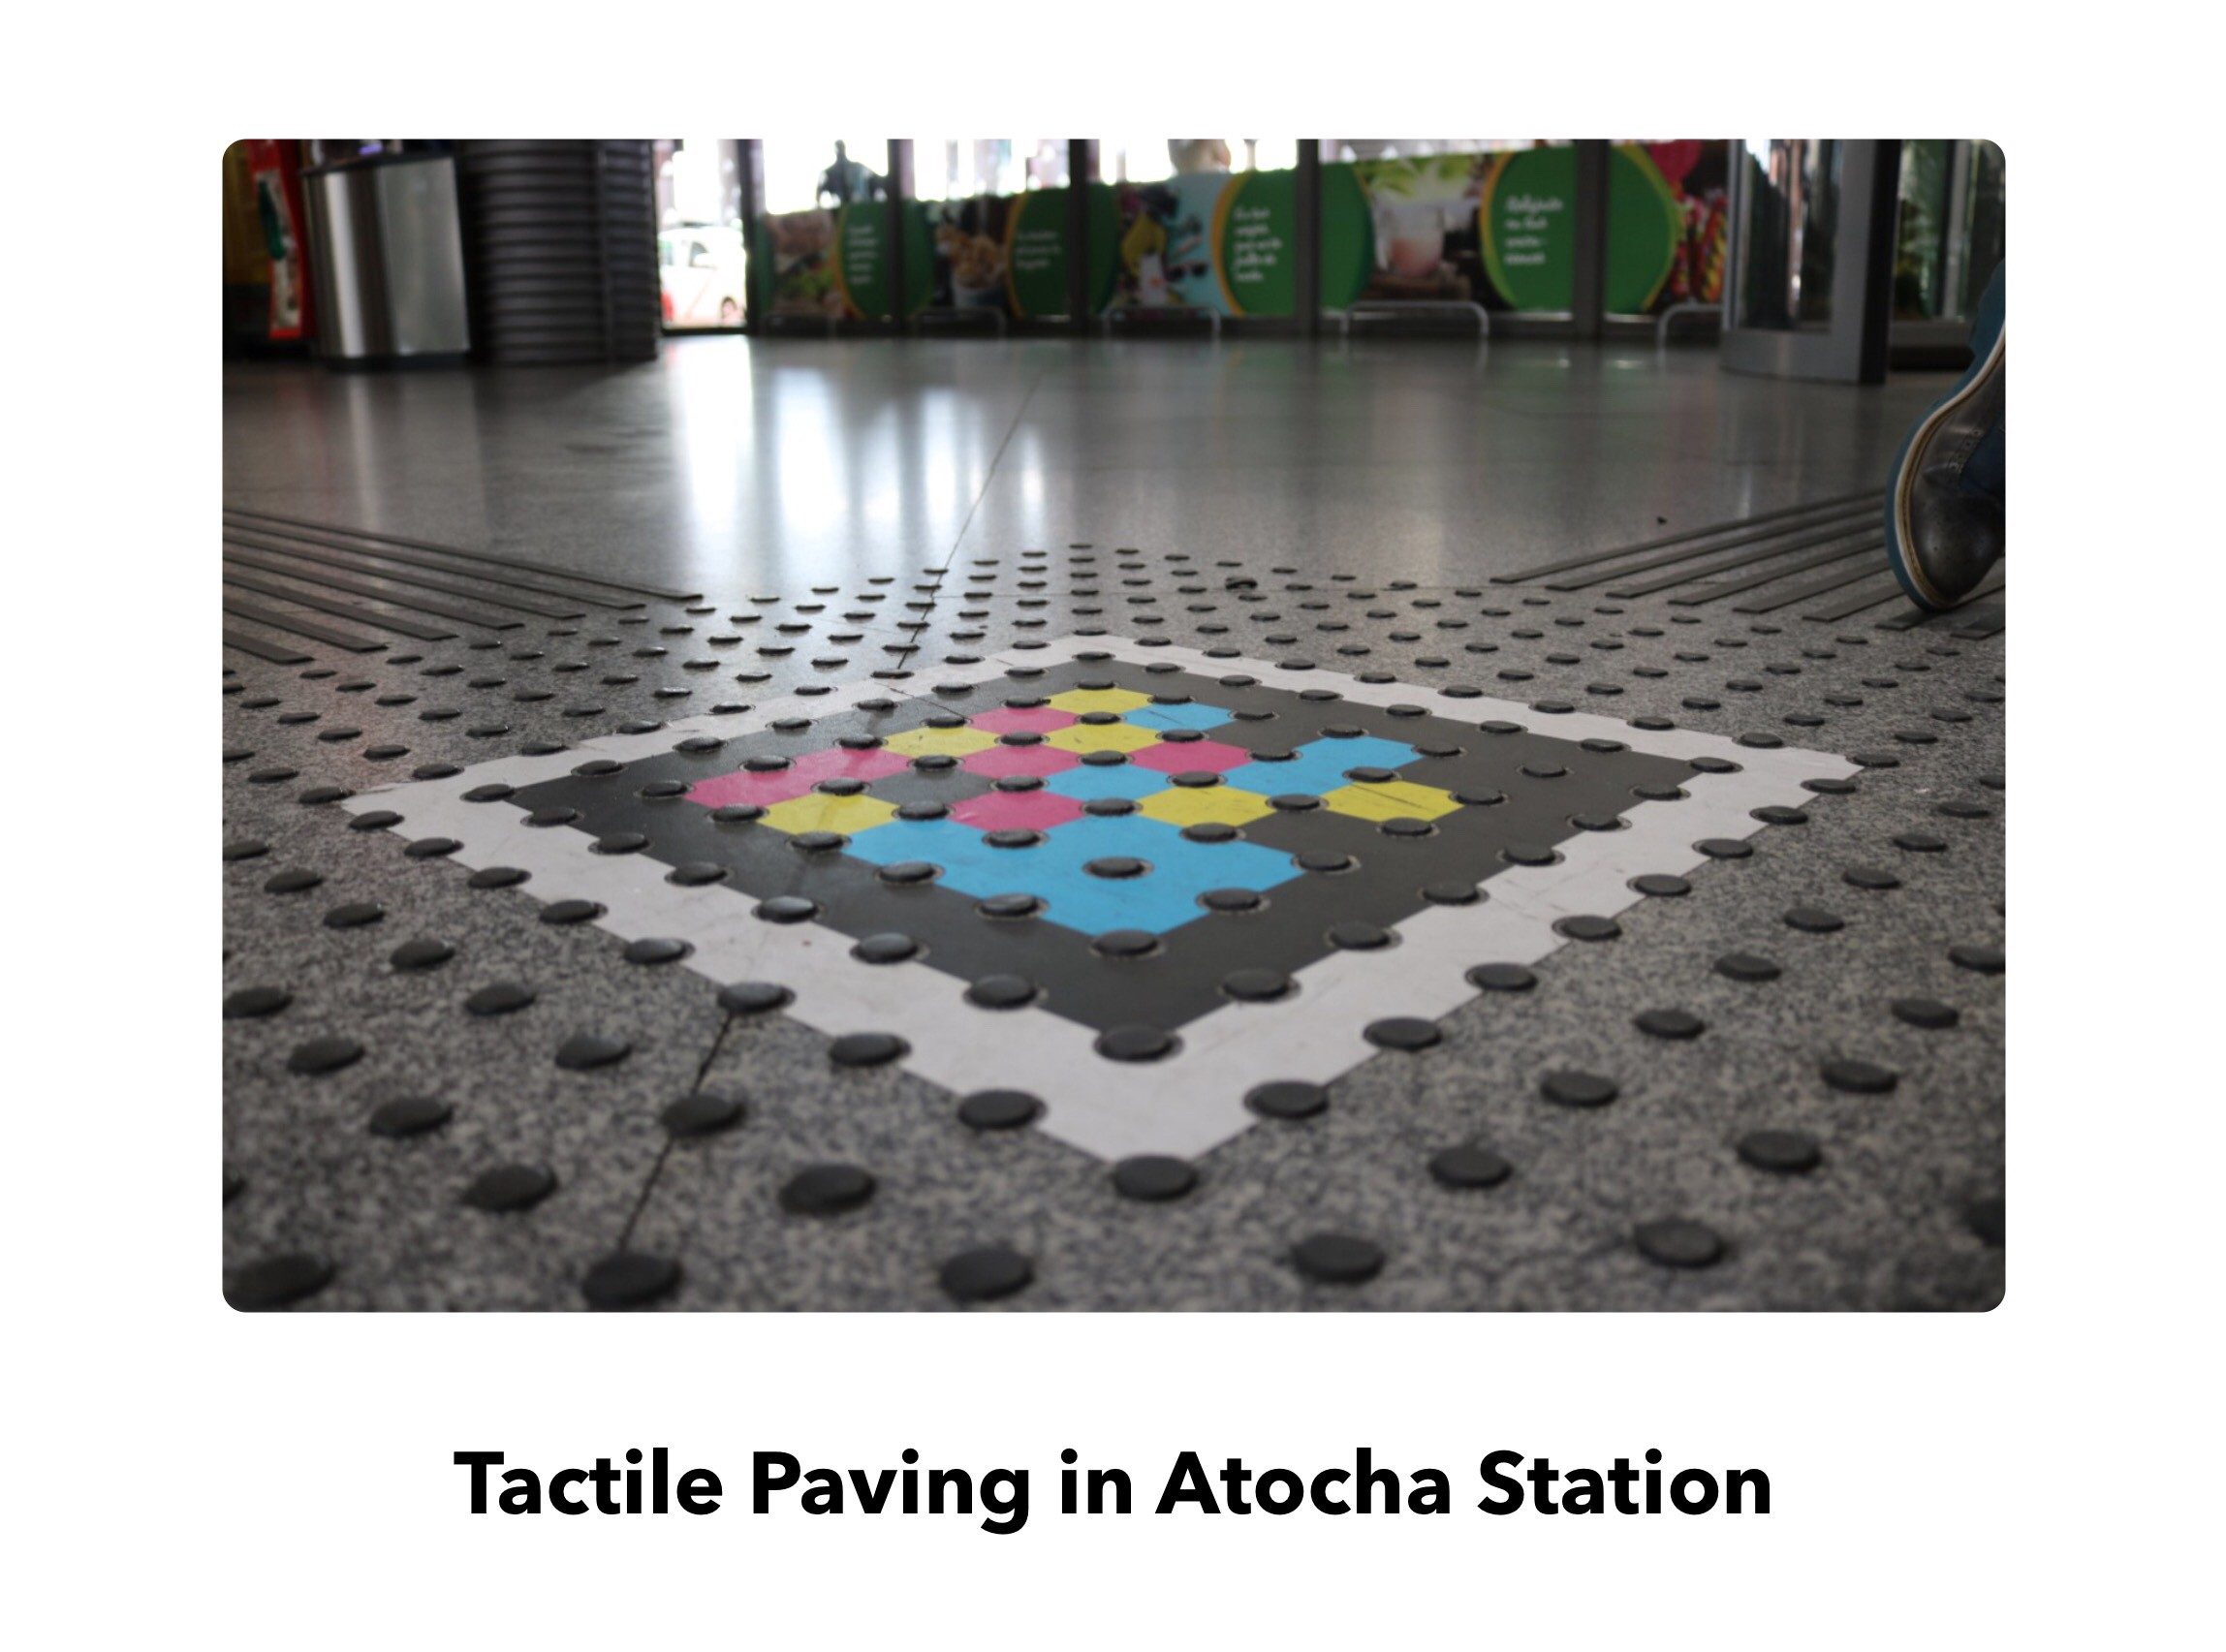 Tactile Paving with a NaviLens code fit to it that does not disturb the original design.